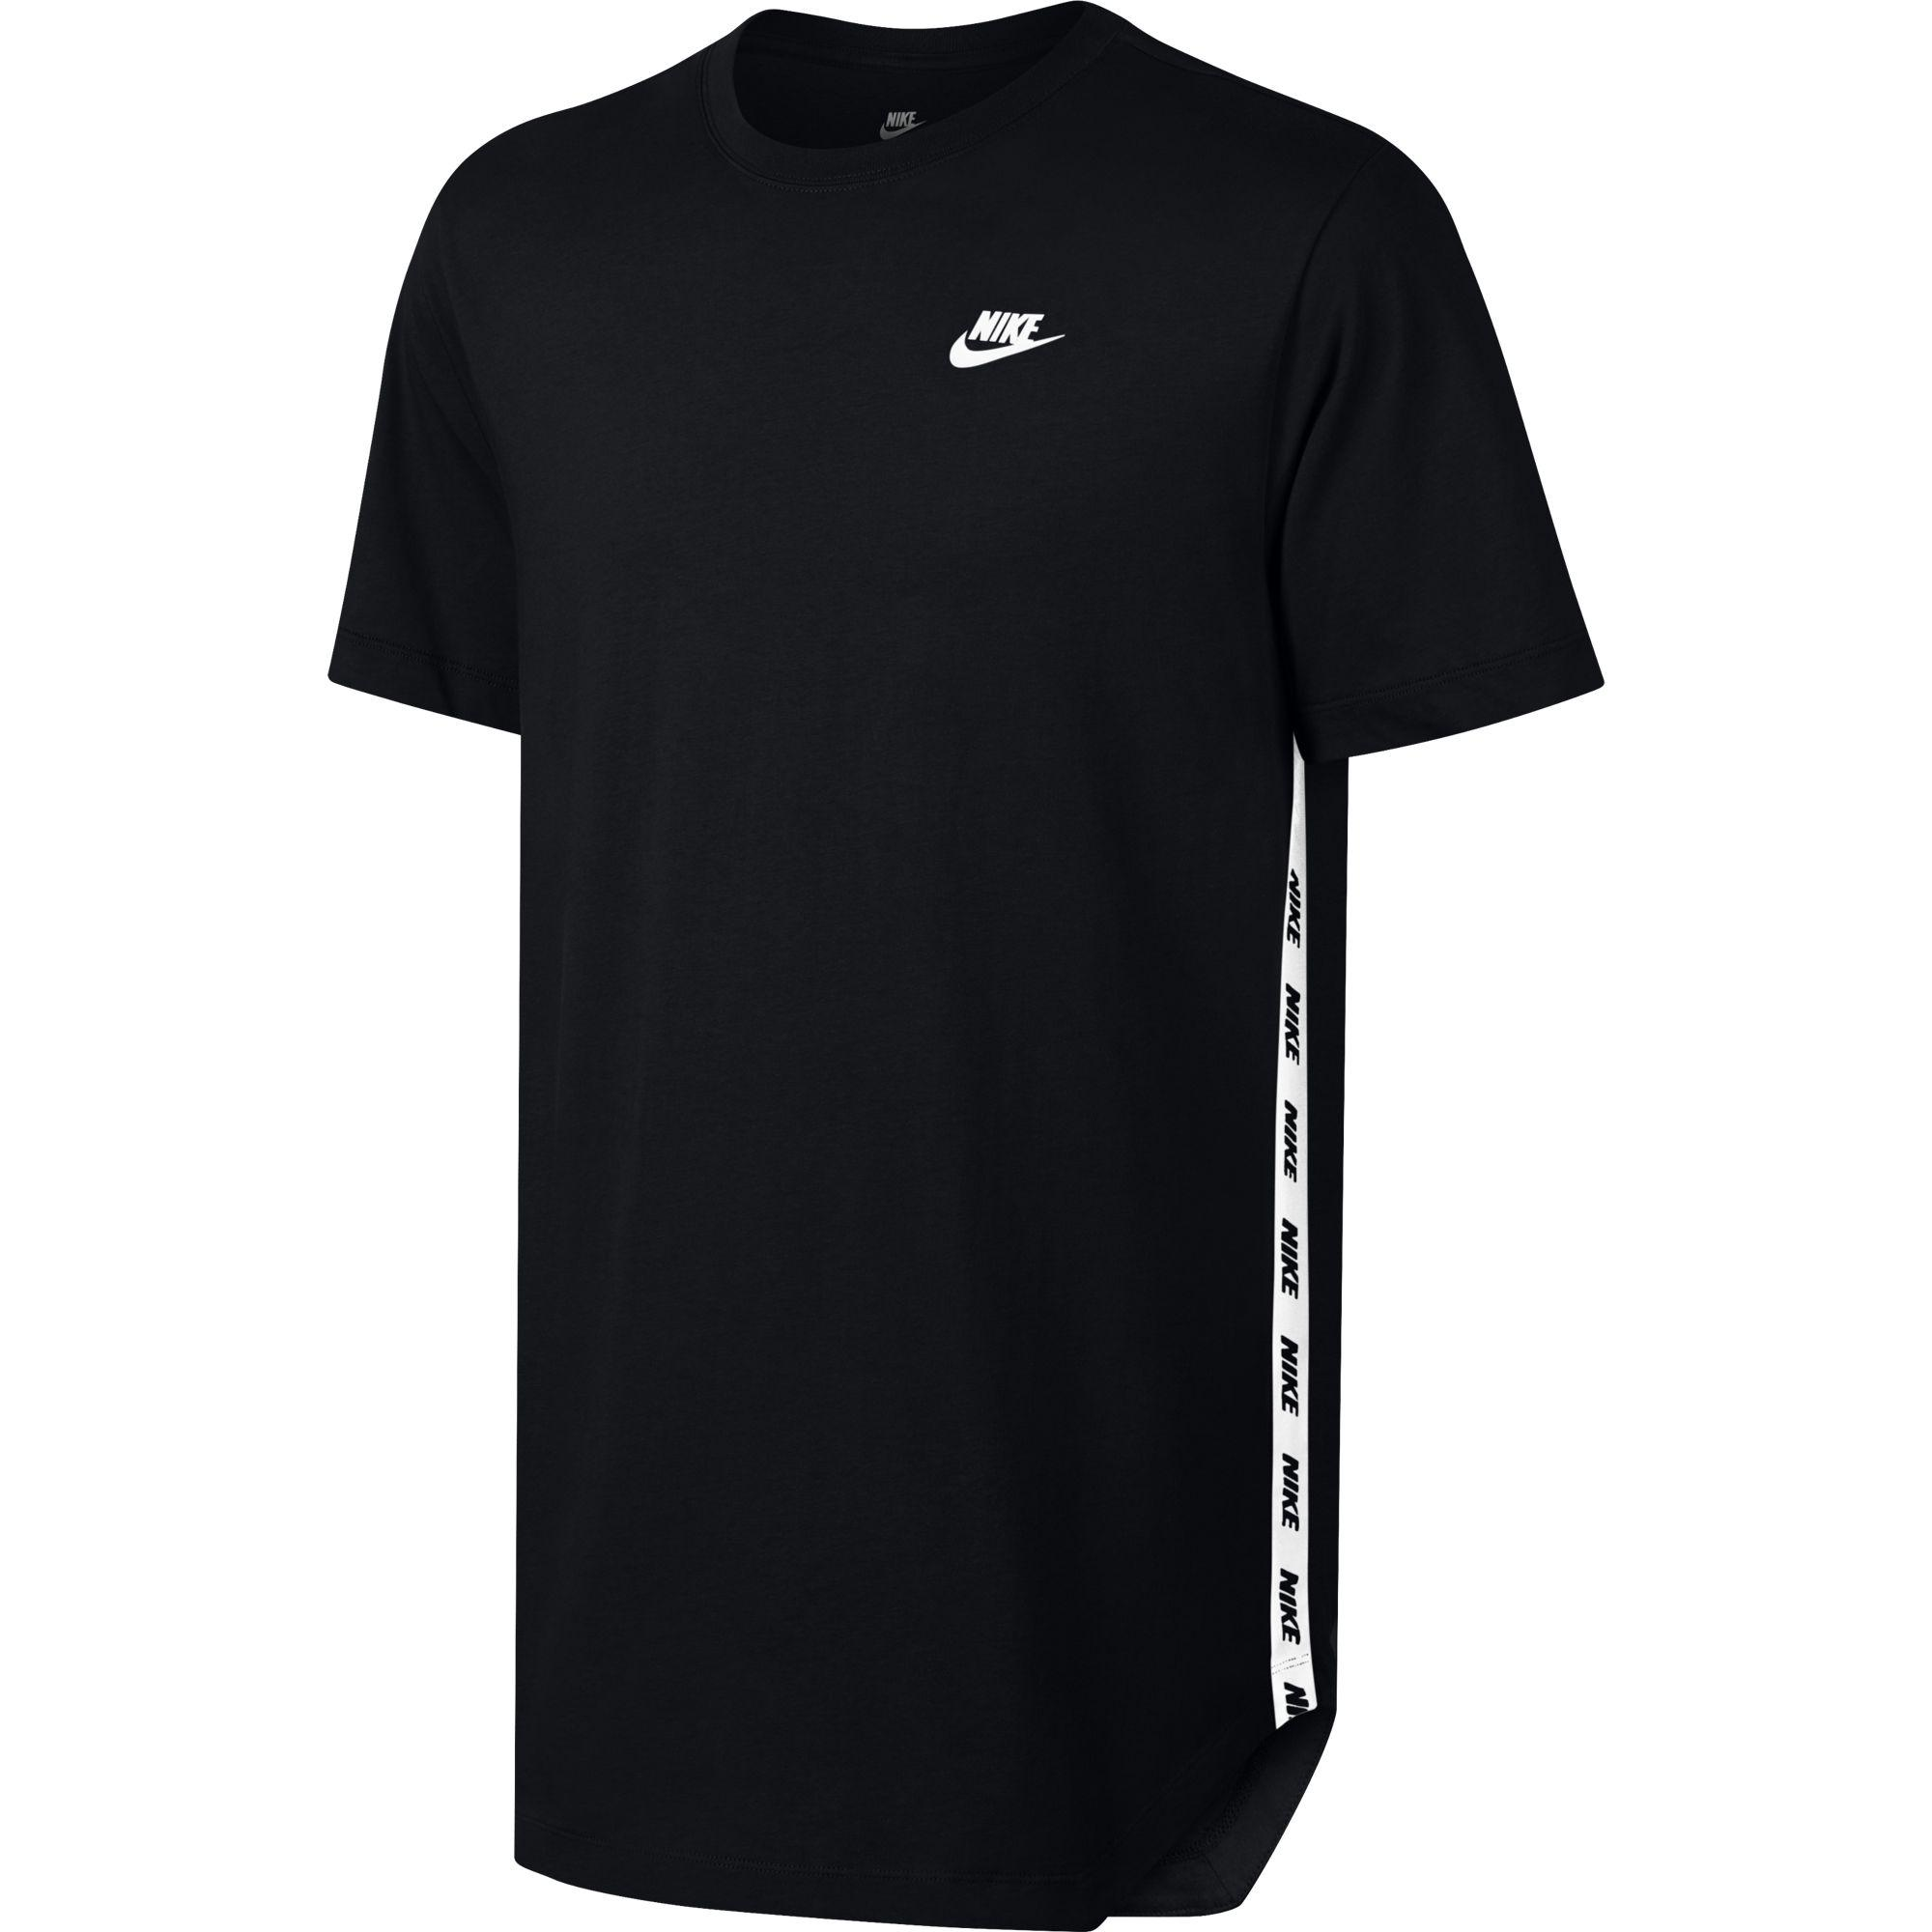 nike mens sportwear t shirt black. Black Bedroom Furniture Sets. Home Design Ideas